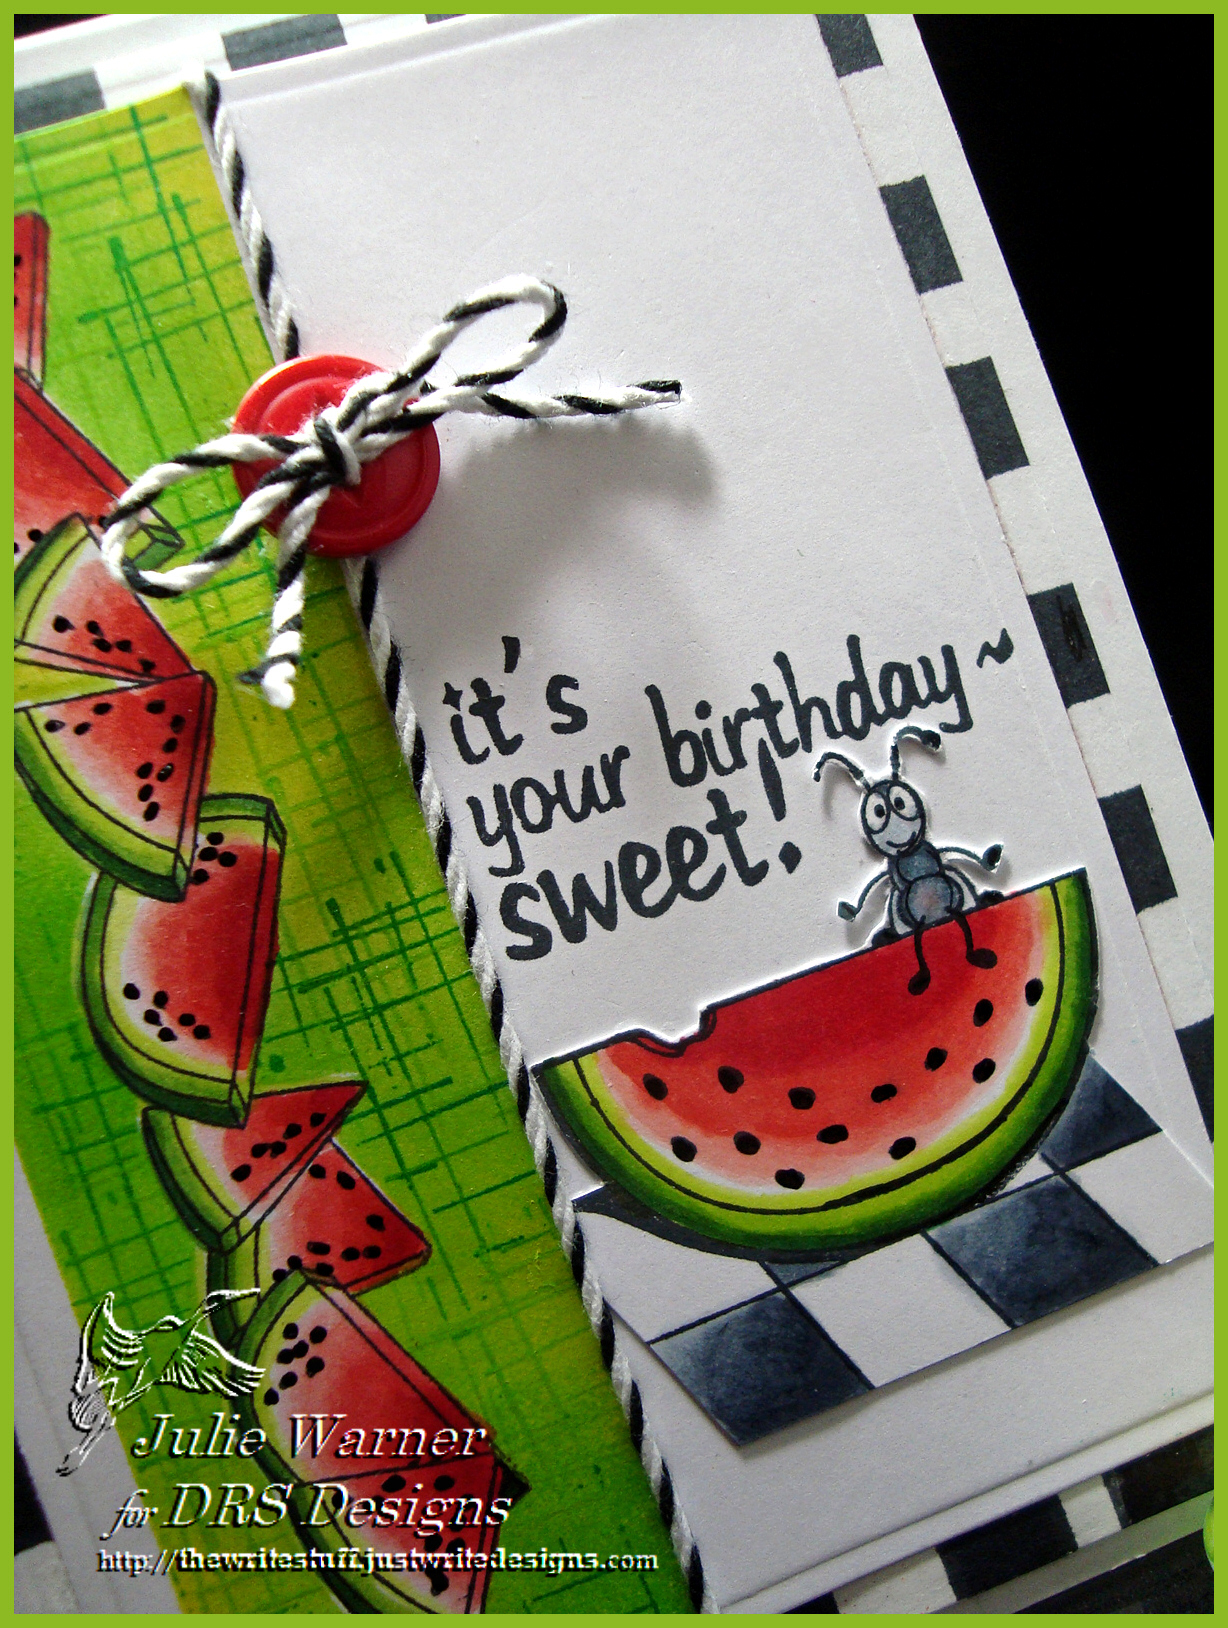 Sweet Watermelon Bday cu 04299